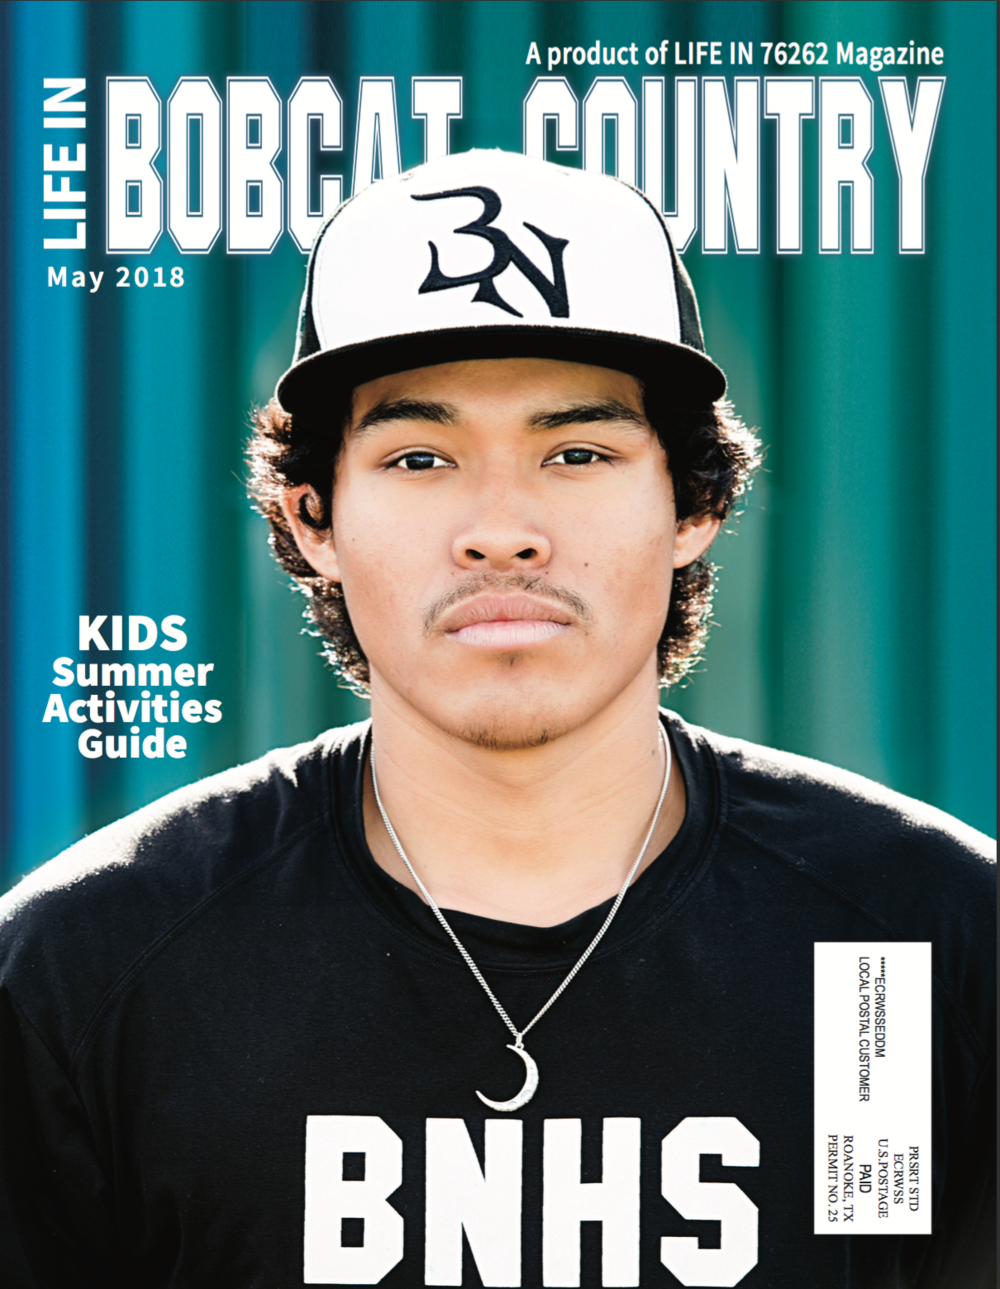 Latest ISsue! CLick and read - The Inaugural issue of BOBCAT COUNTRY